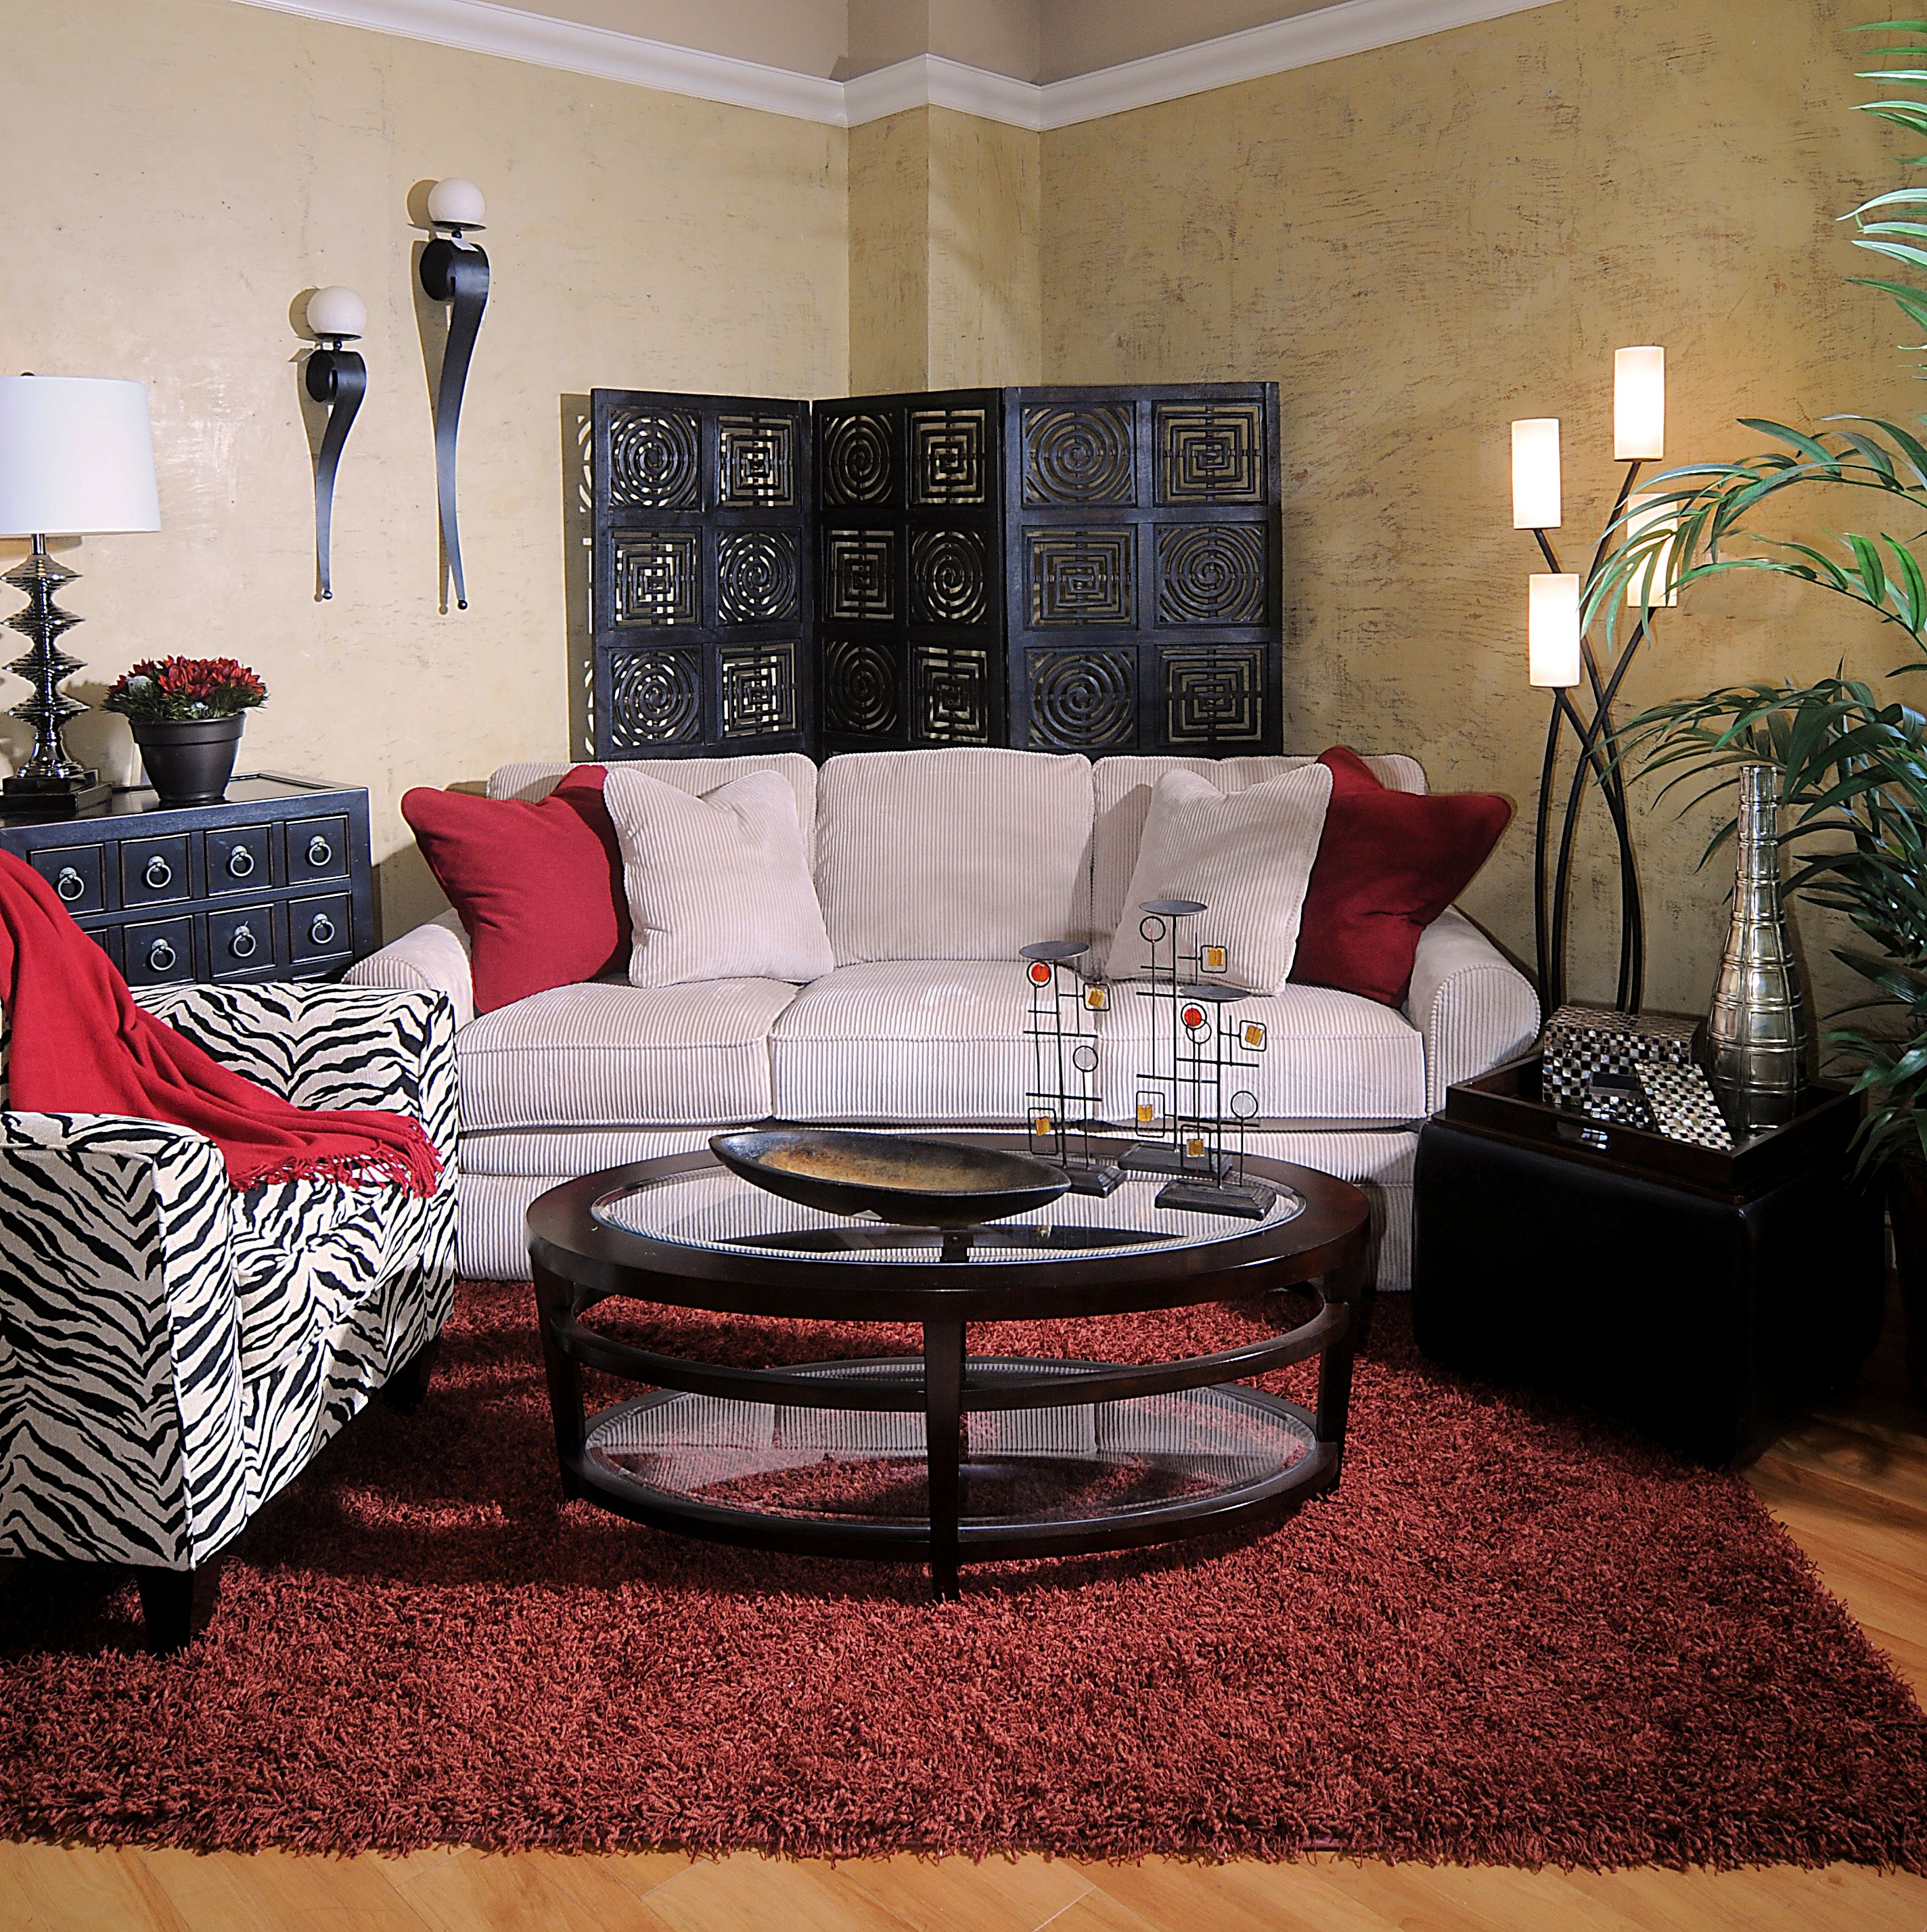 Cosy living room with an African-esque black and red design, with Zebra print armchair